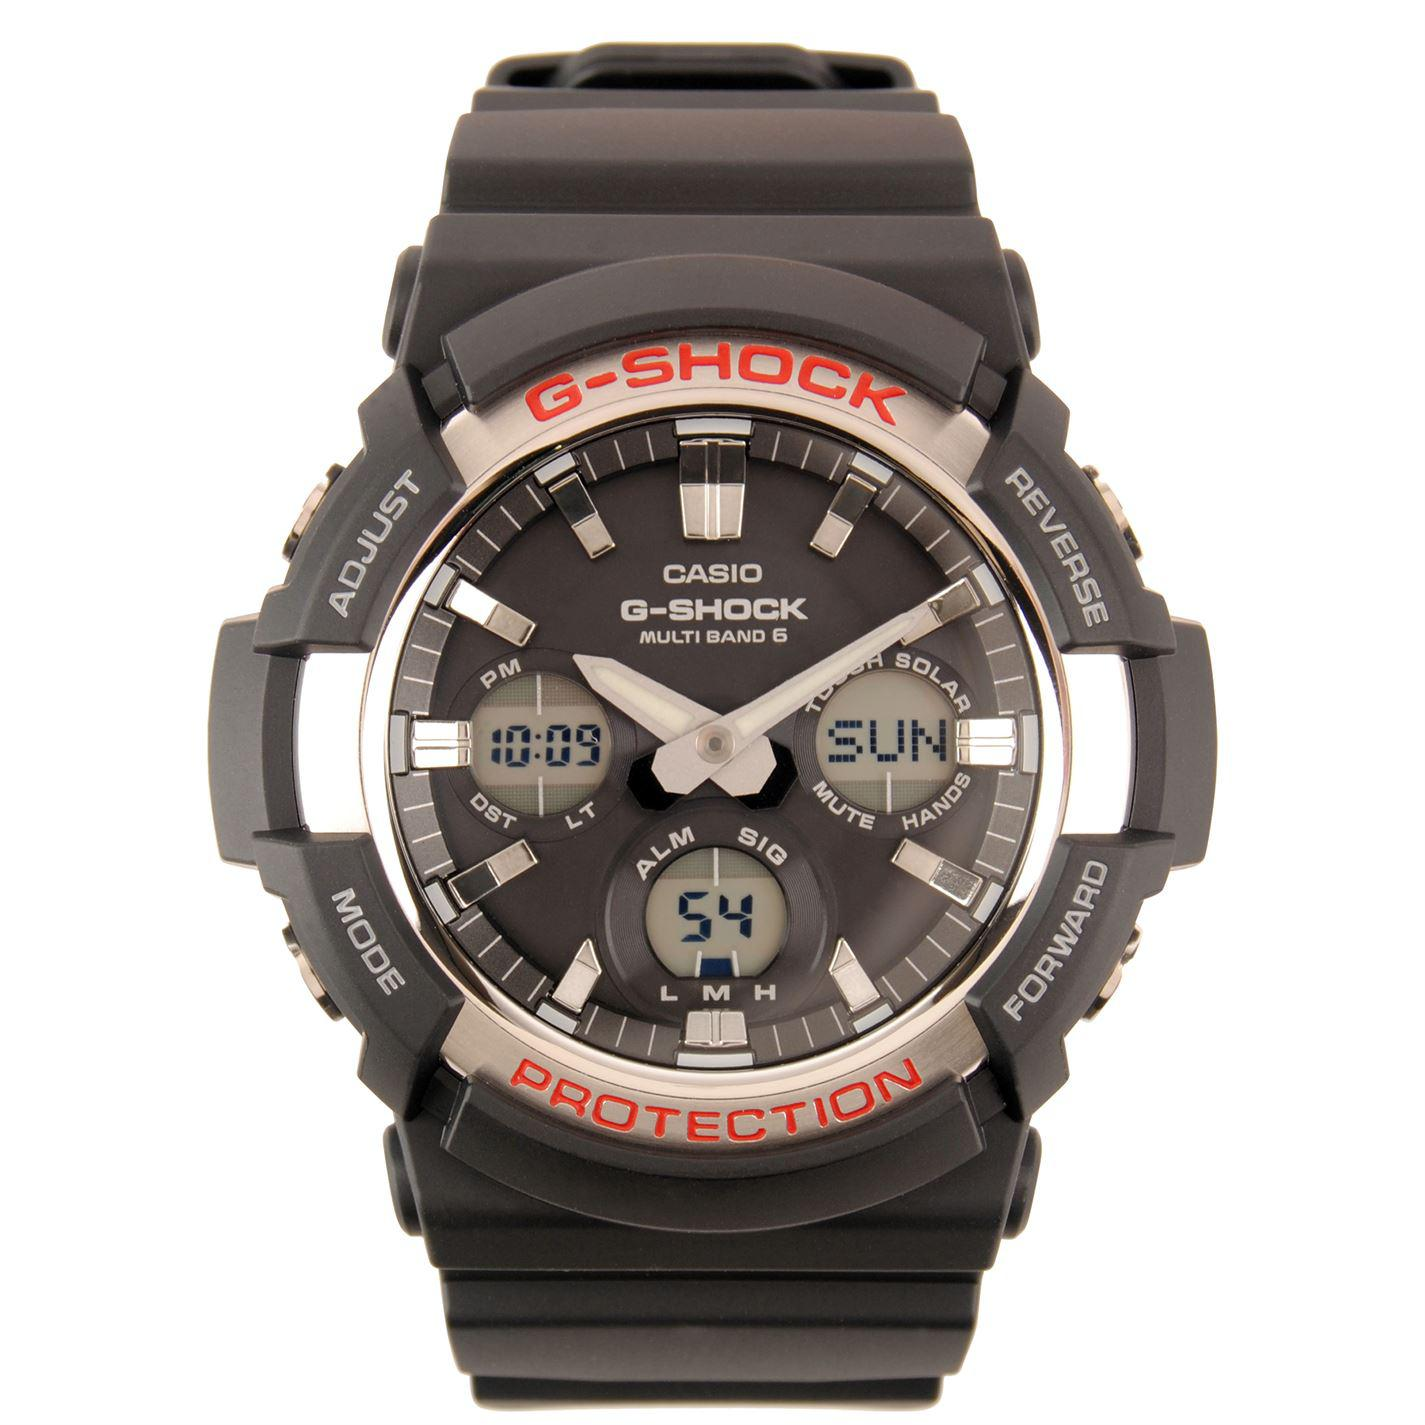 9894881c17d G-Shock Gaw 100 Watch in Black for Men - Lyst